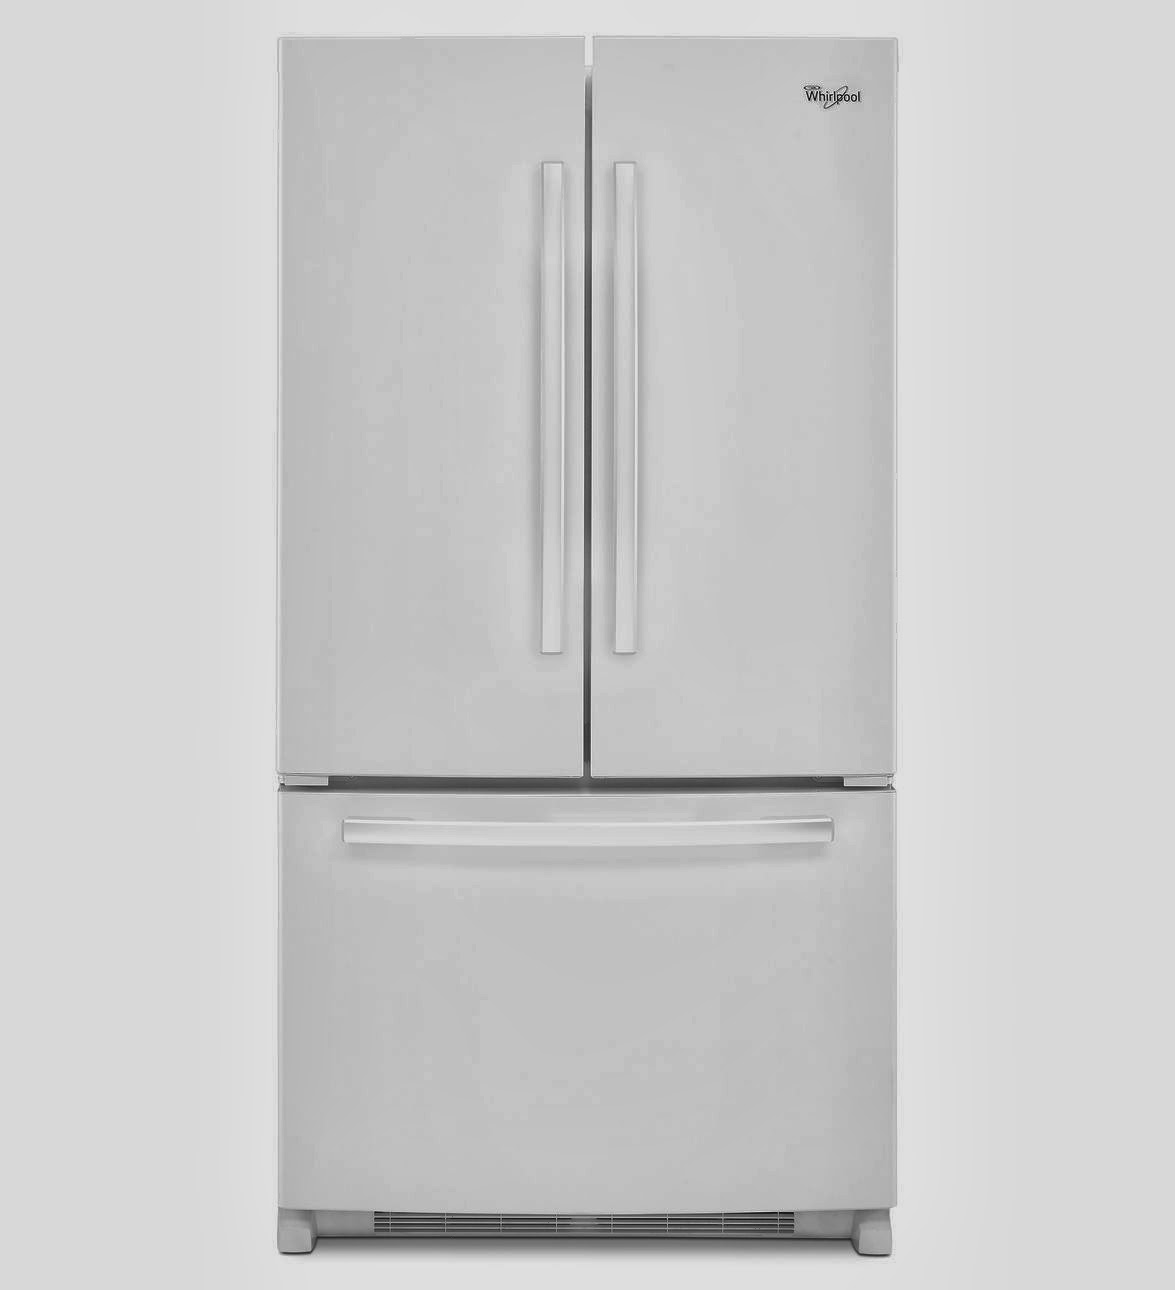 whirlpool refrigerator brand gx5fhdxvq bottom freezer. Black Bedroom Furniture Sets. Home Design Ideas